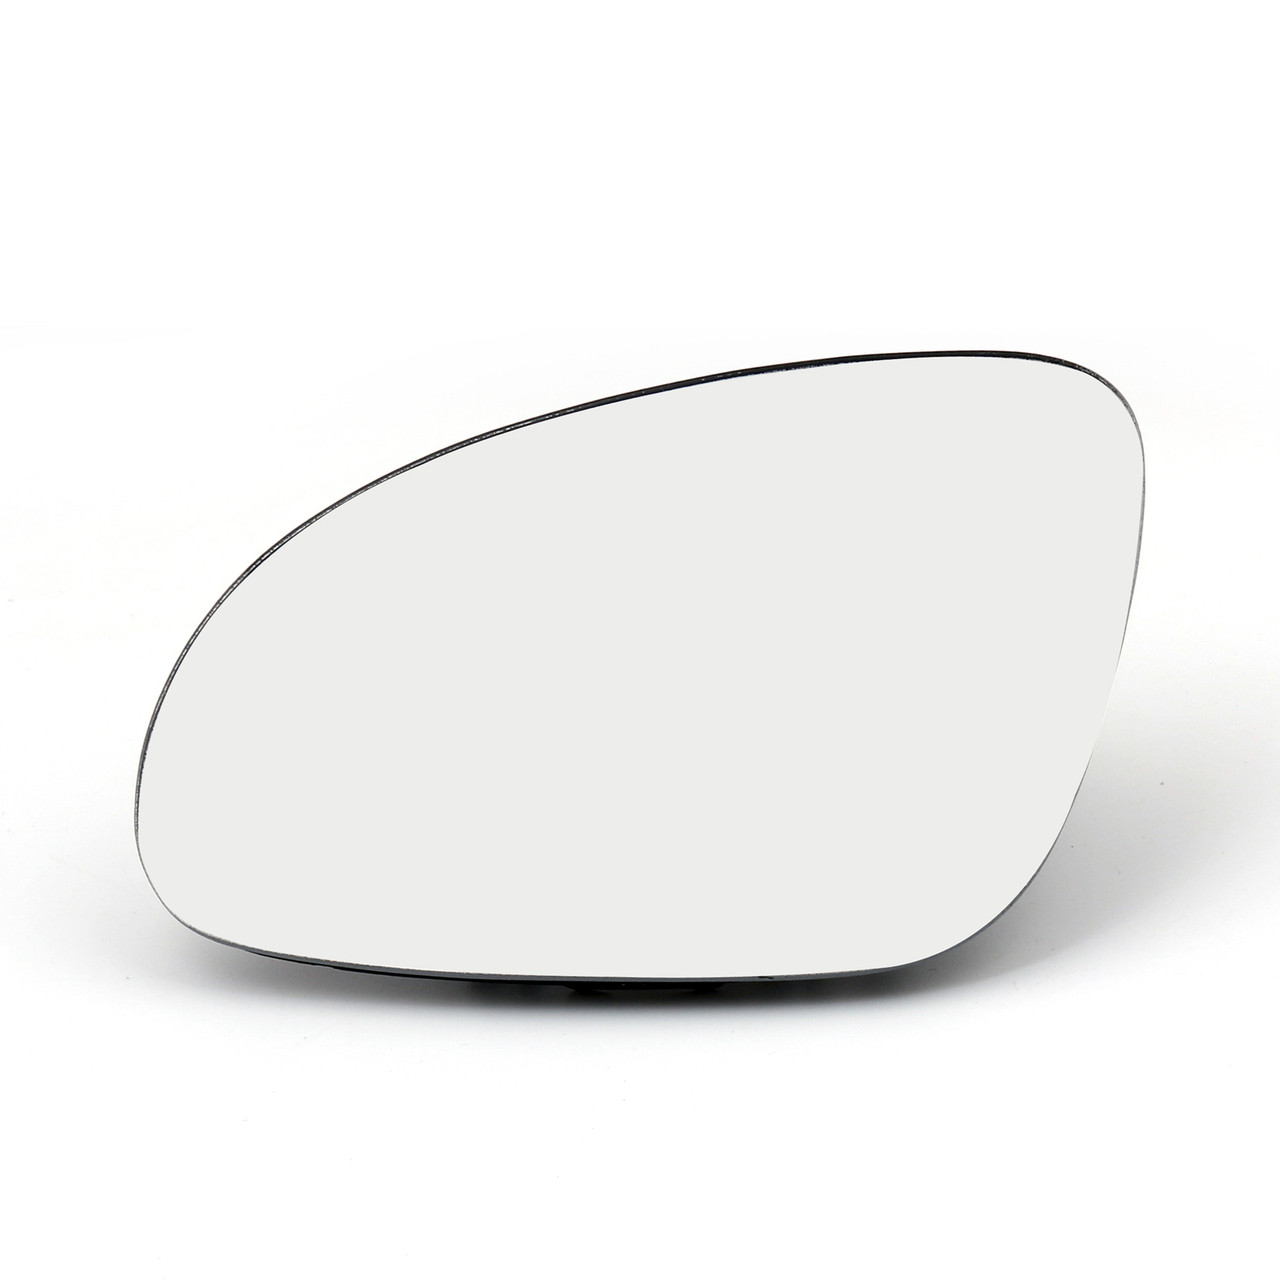 Right Driver  side wing mirror glass for Volkswagen Sharan 04-10 heated